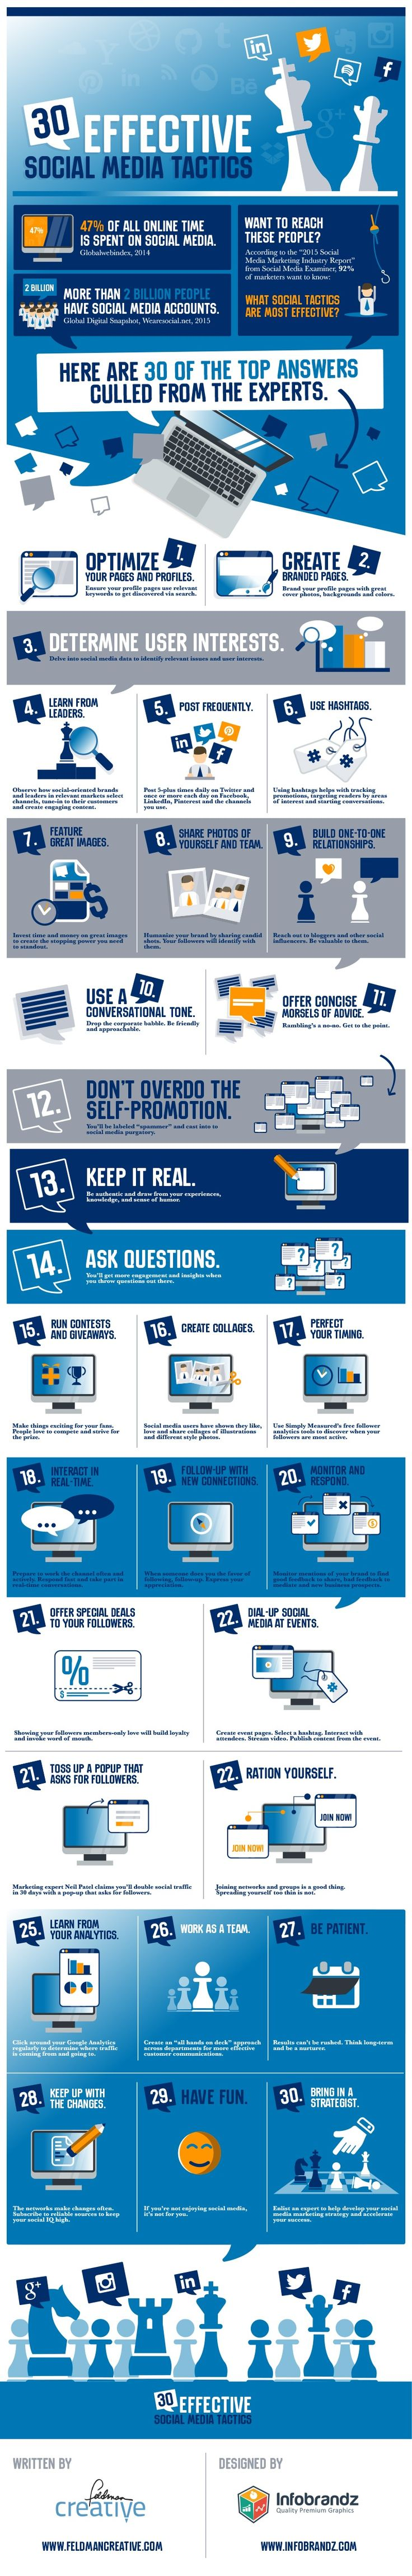 The Top 30 Social Media Tips, Tricks and Tactics.  #SocialMedia  #Marketing  #RealEstateAgent